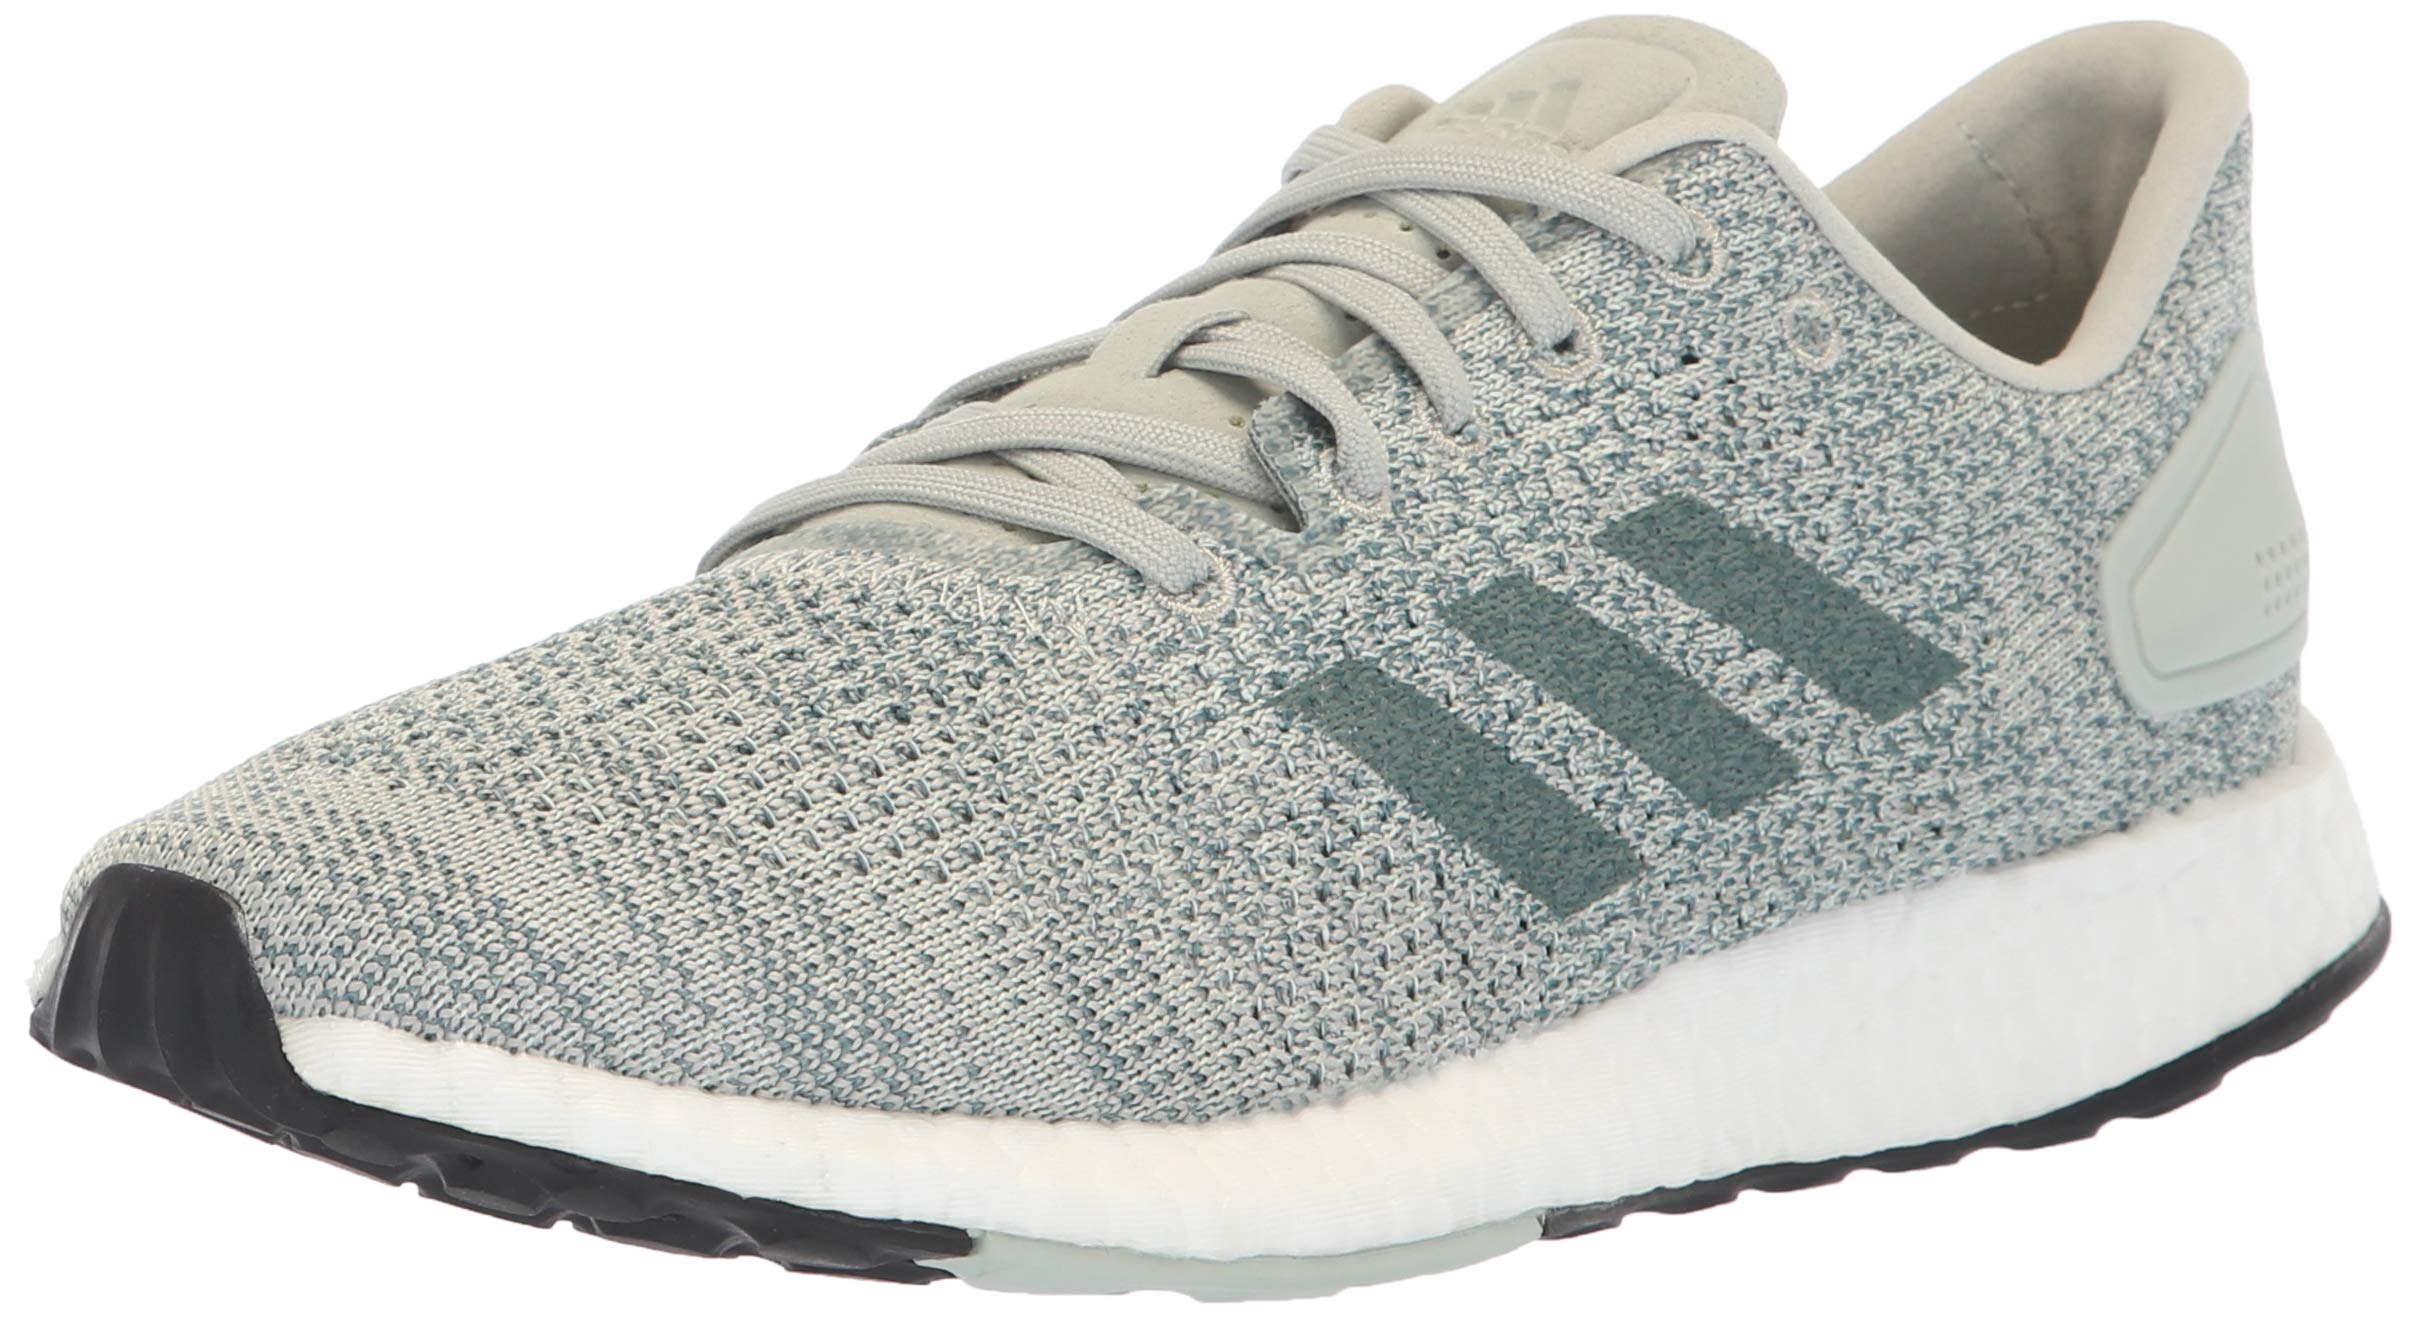 adidas Women's Pureboost DPR Running Shoes, ash Silver/raw aero Green, 6.5 M US by adidas